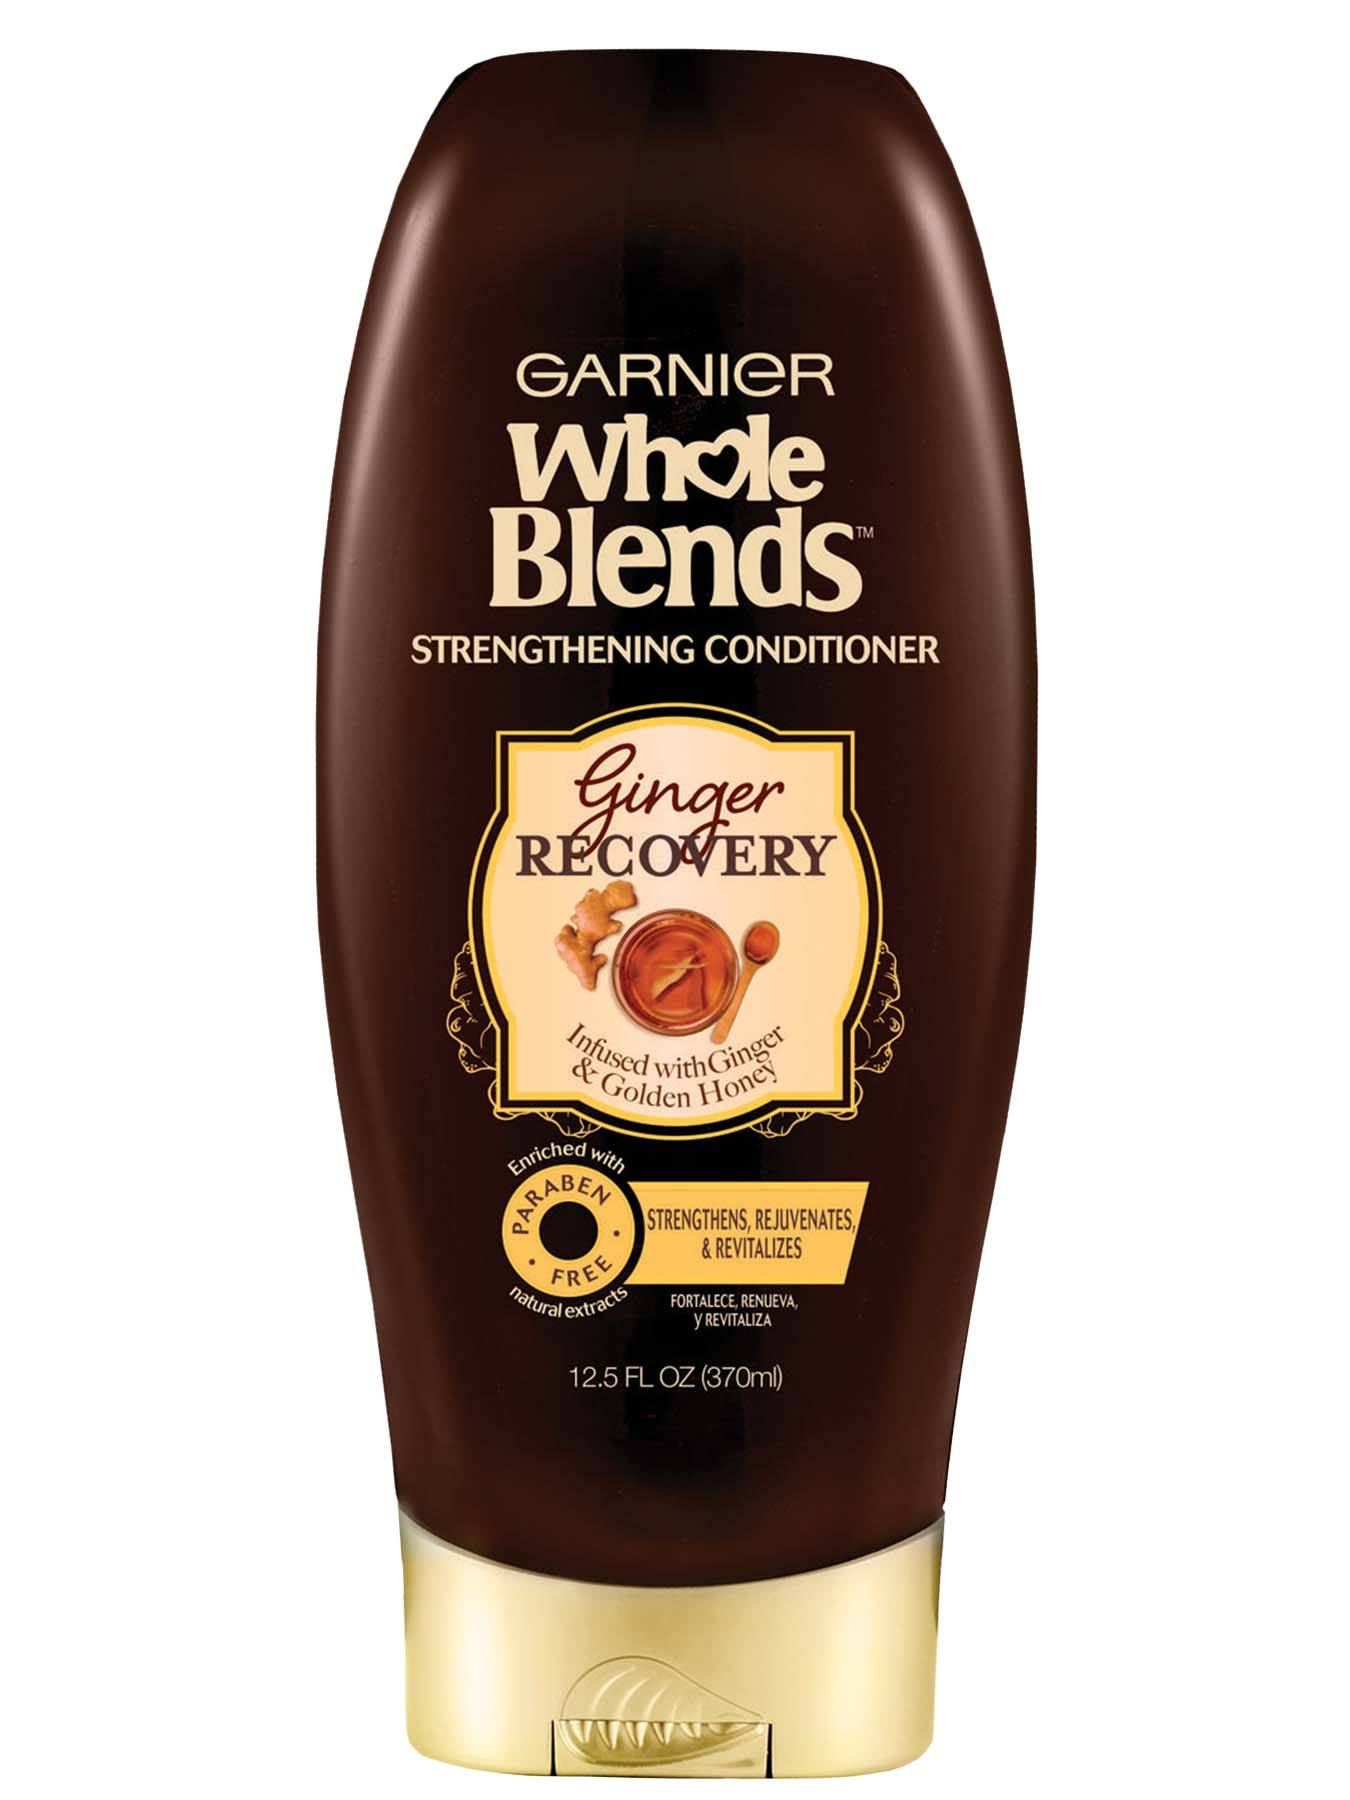 Front view of Whole Blends Ginger Recovery Strengthening Conditioner.